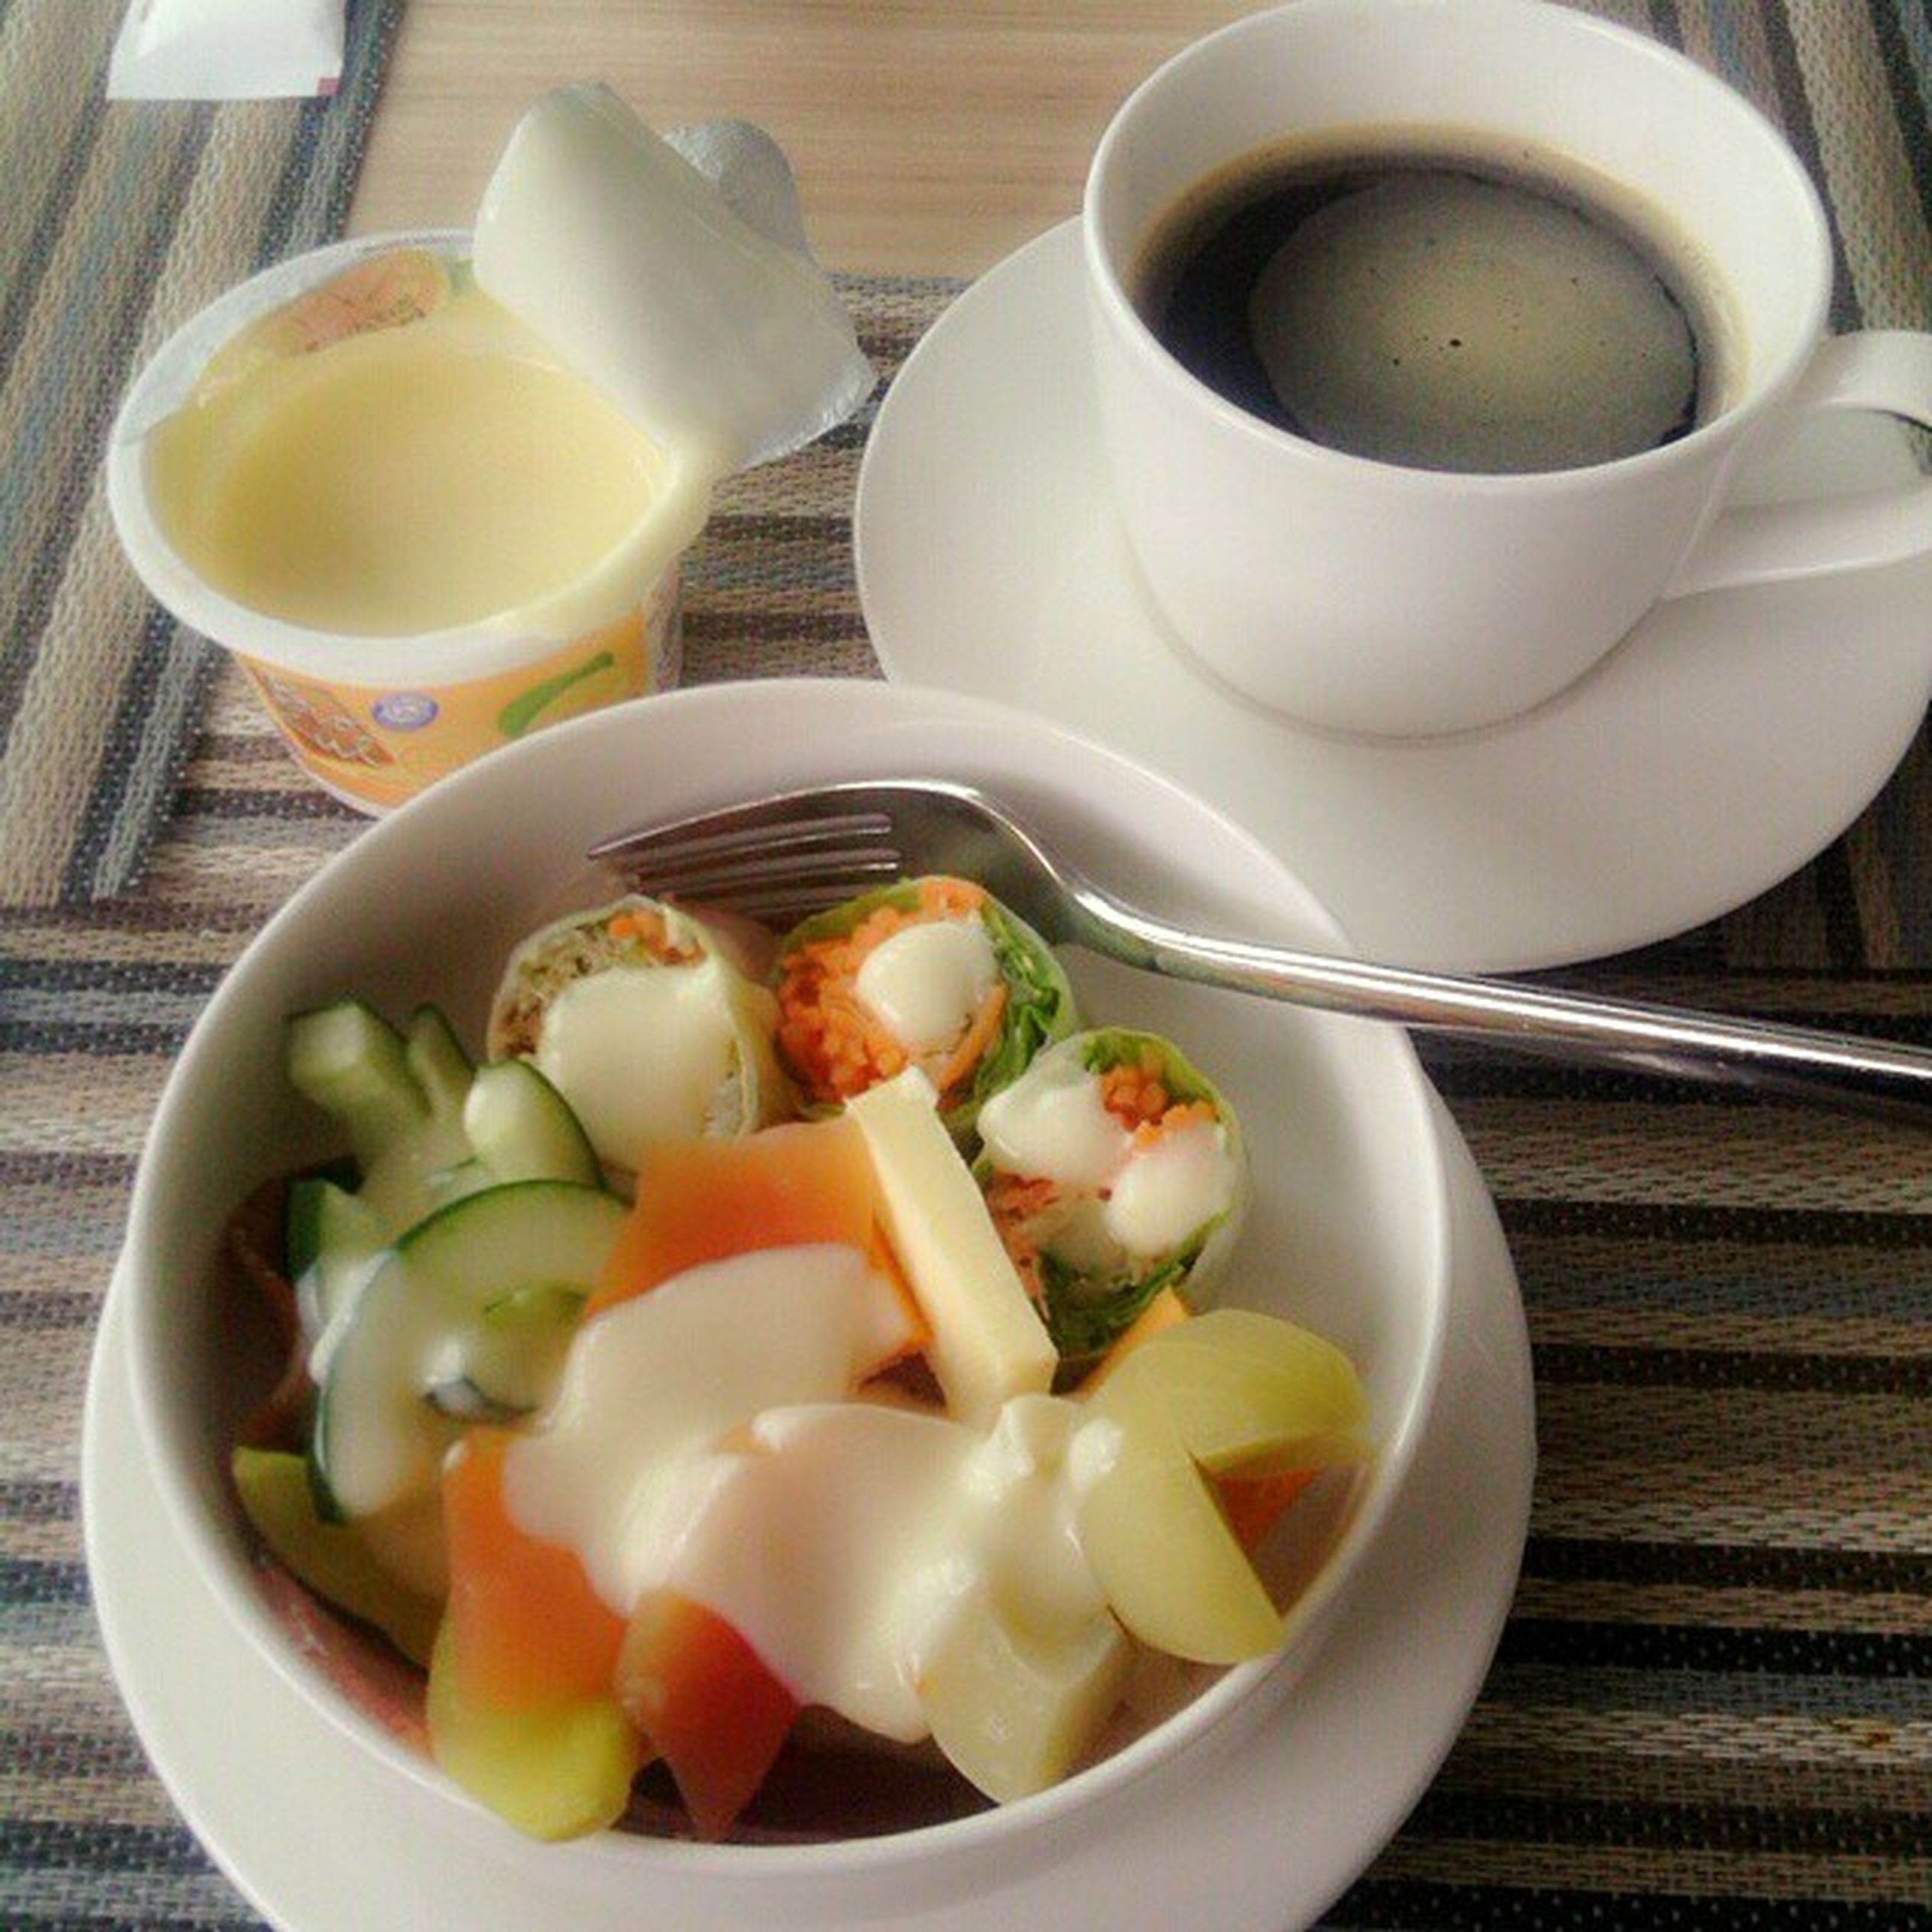 food and drink, indoors, freshness, food, healthy eating, plate, table, drink, still life, bowl, ready-to-eat, spoon, refreshment, breakfast, serving size, high angle view, meal, close-up, soup, coffee cup